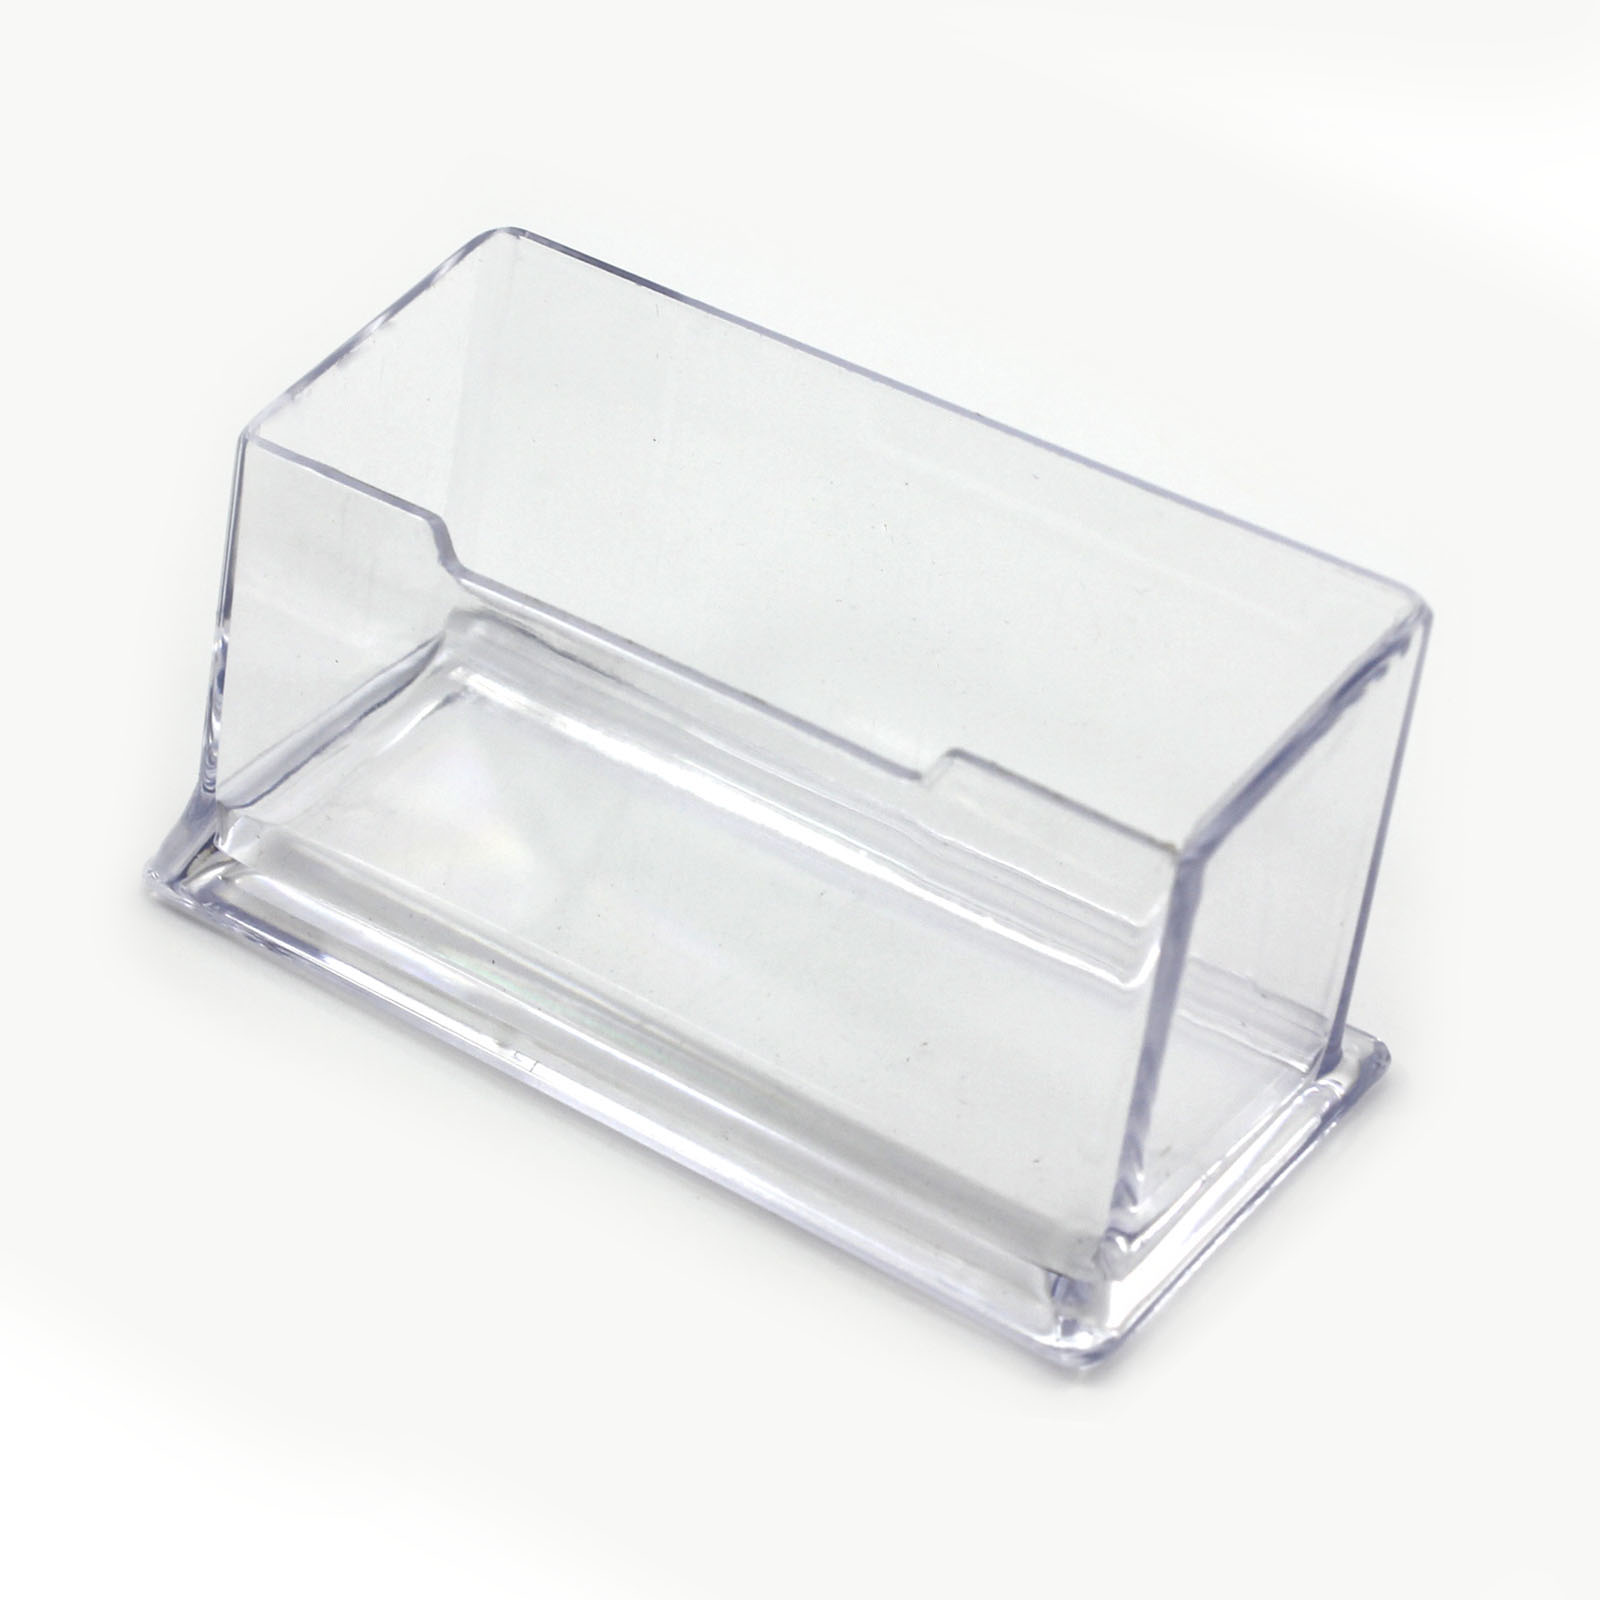 Practical transparent cuboid acrylic desktop business card holder practical transparent cuboid acrylic desktop business card holder display box in storage boxes bins from home garden on aliexpress alibaba group reheart Image collections